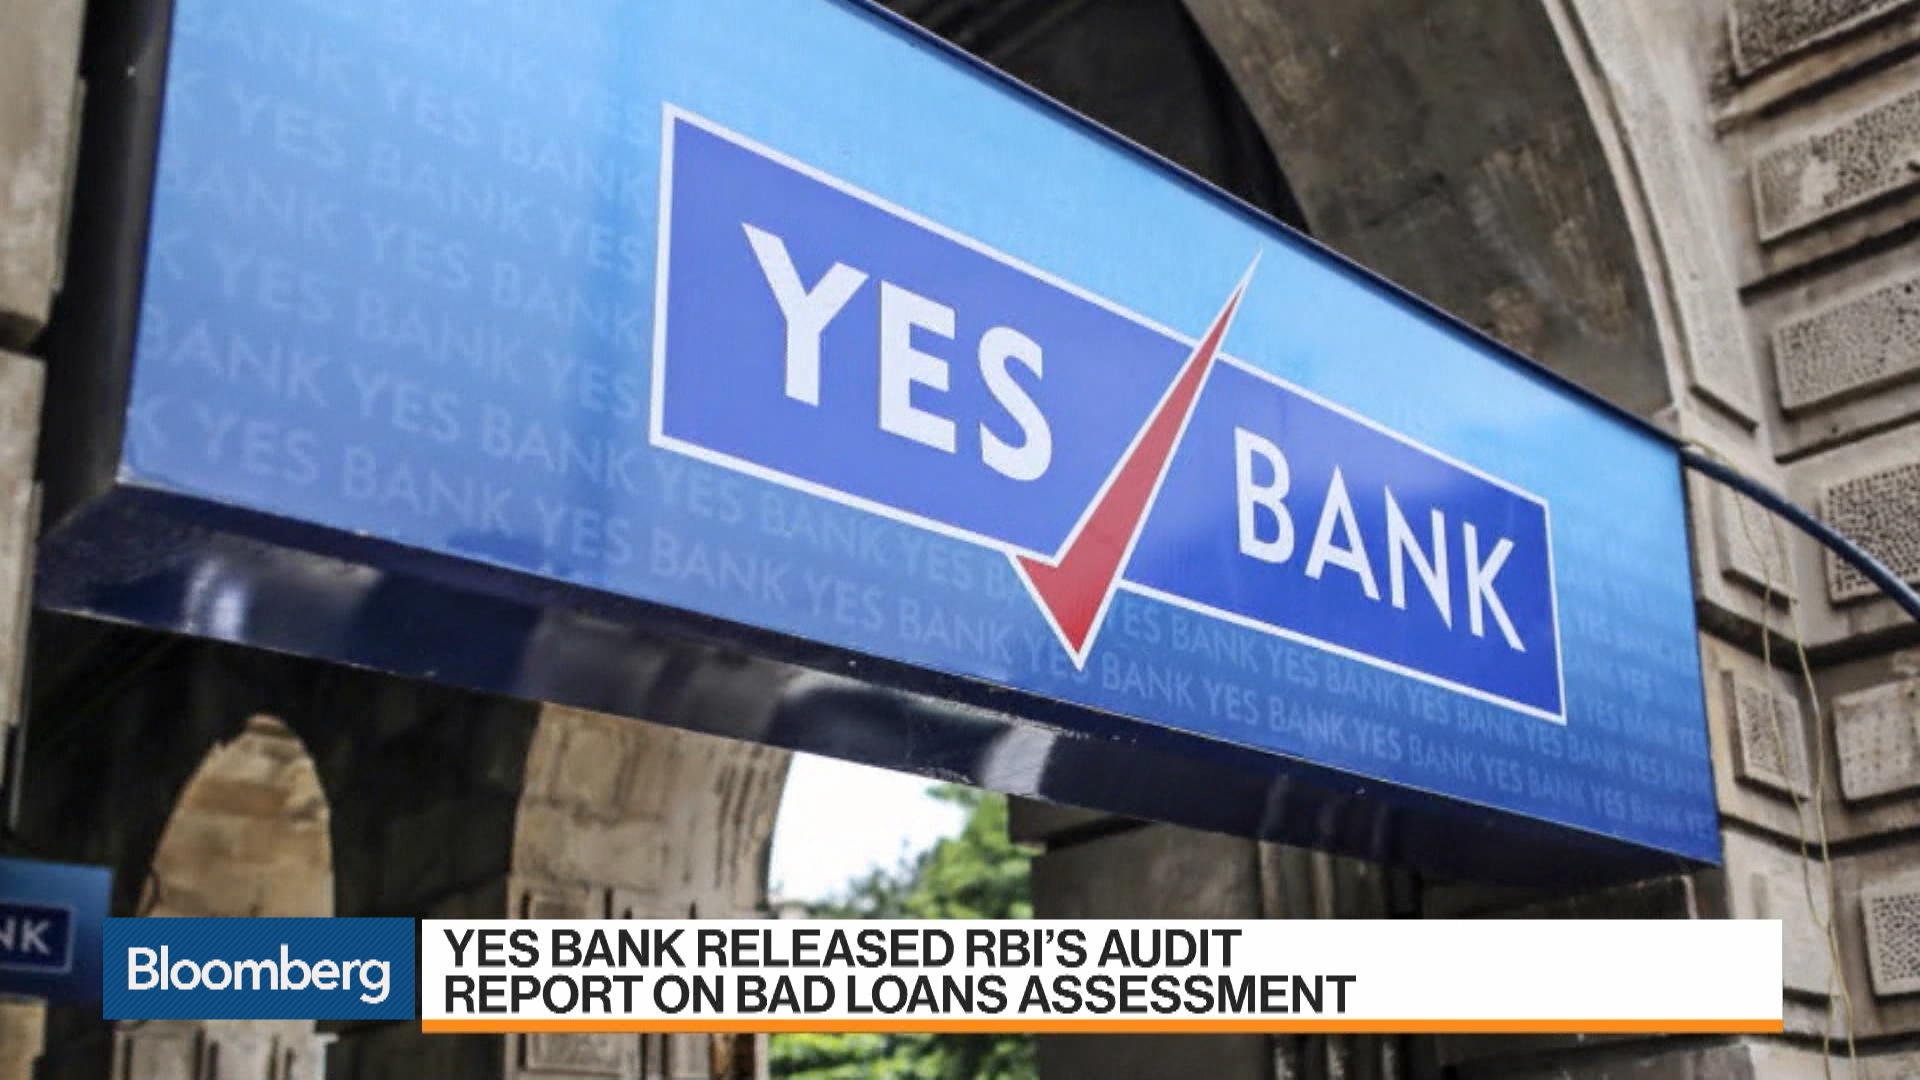 Yes Bank Censured by Indian Regulator